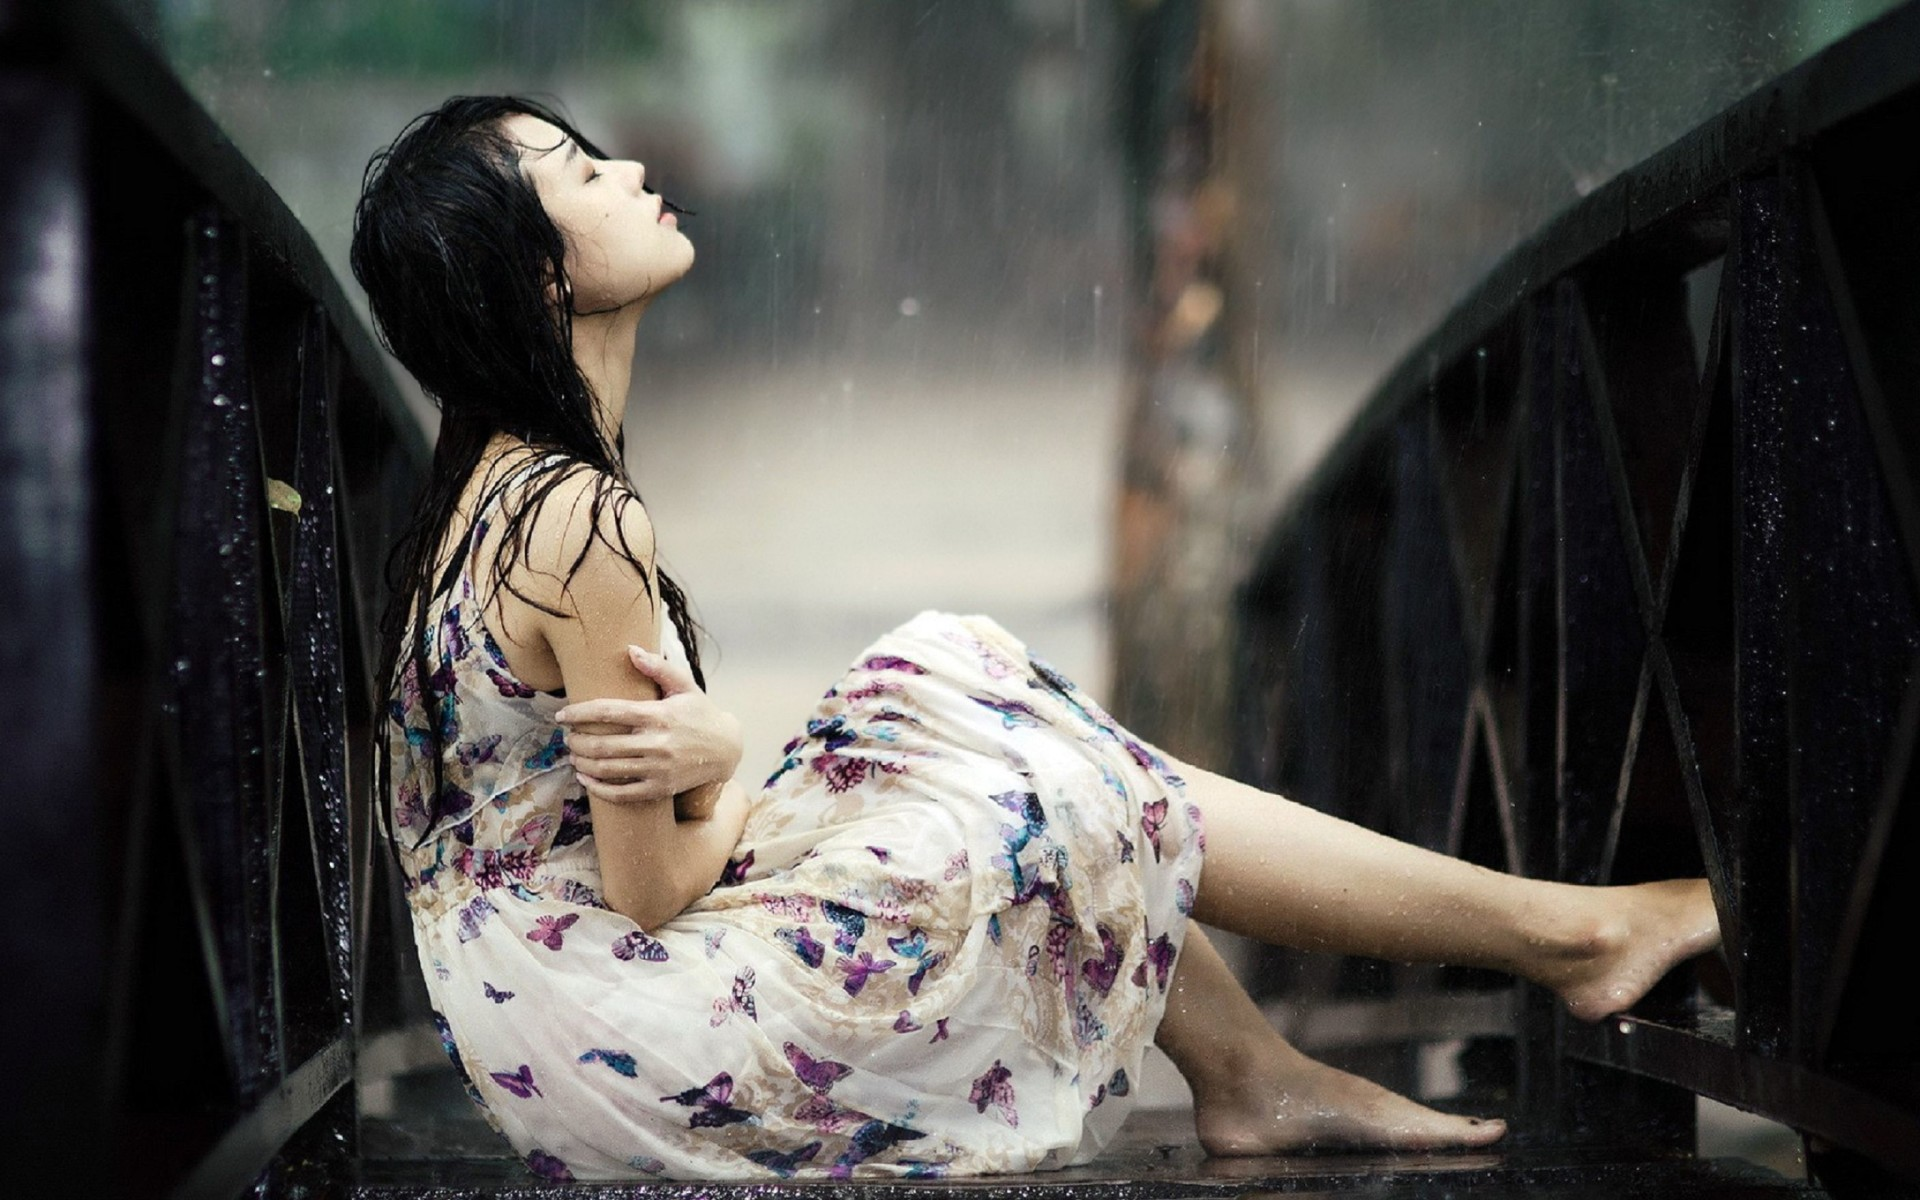 Sad Girl In Rain Wallpaper